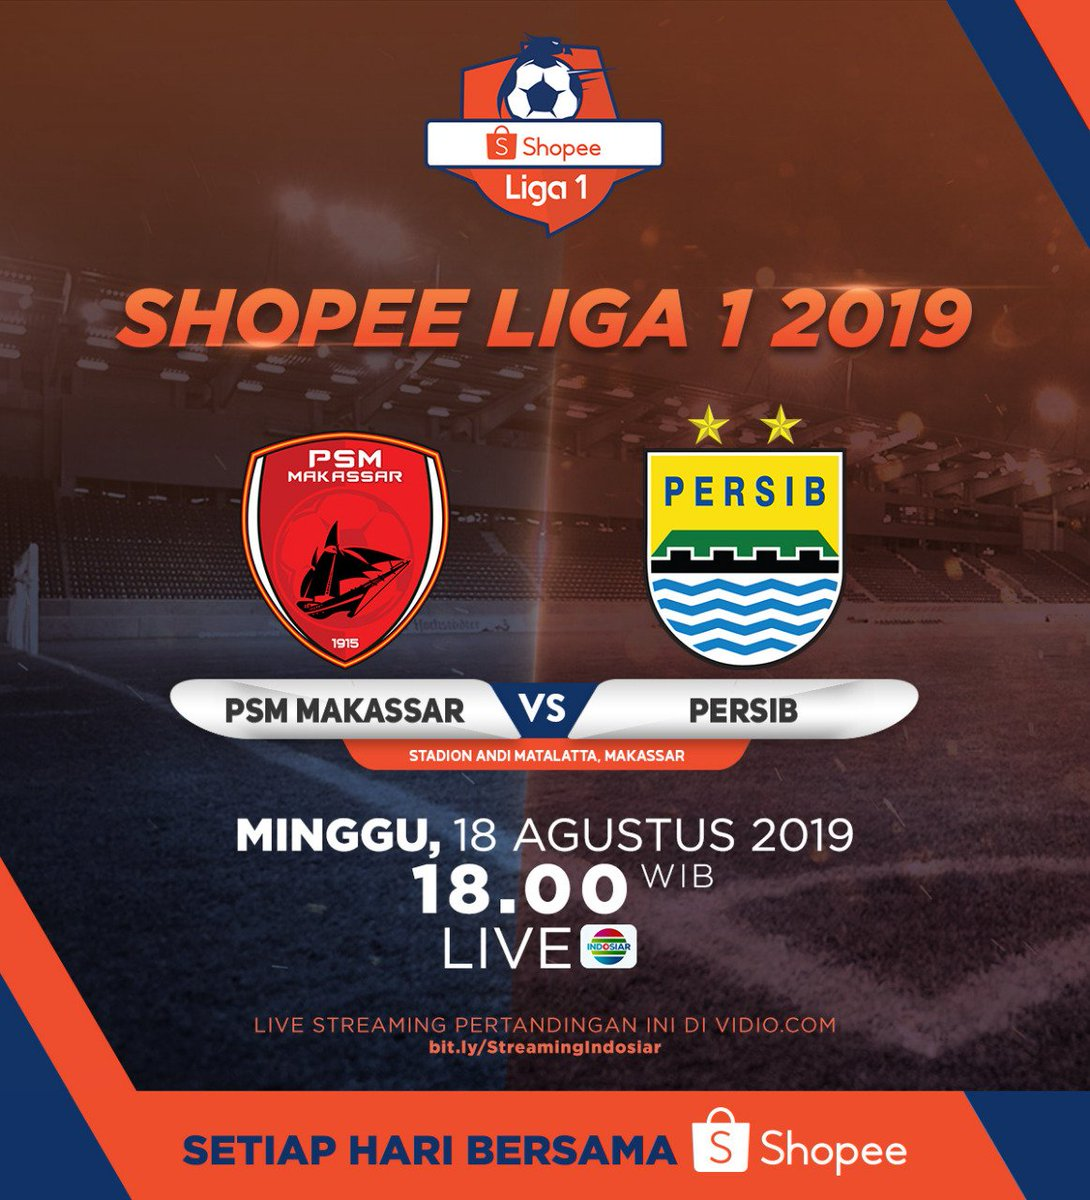 RT @SiaranBolaLivee: #TODAYMATCH #ShopeeLiga1  PSM MAKASSAR vs PERSIB K.O 18.30 WIB INDOSIAR LIVE https://t.co/uR4jb6YAgQ